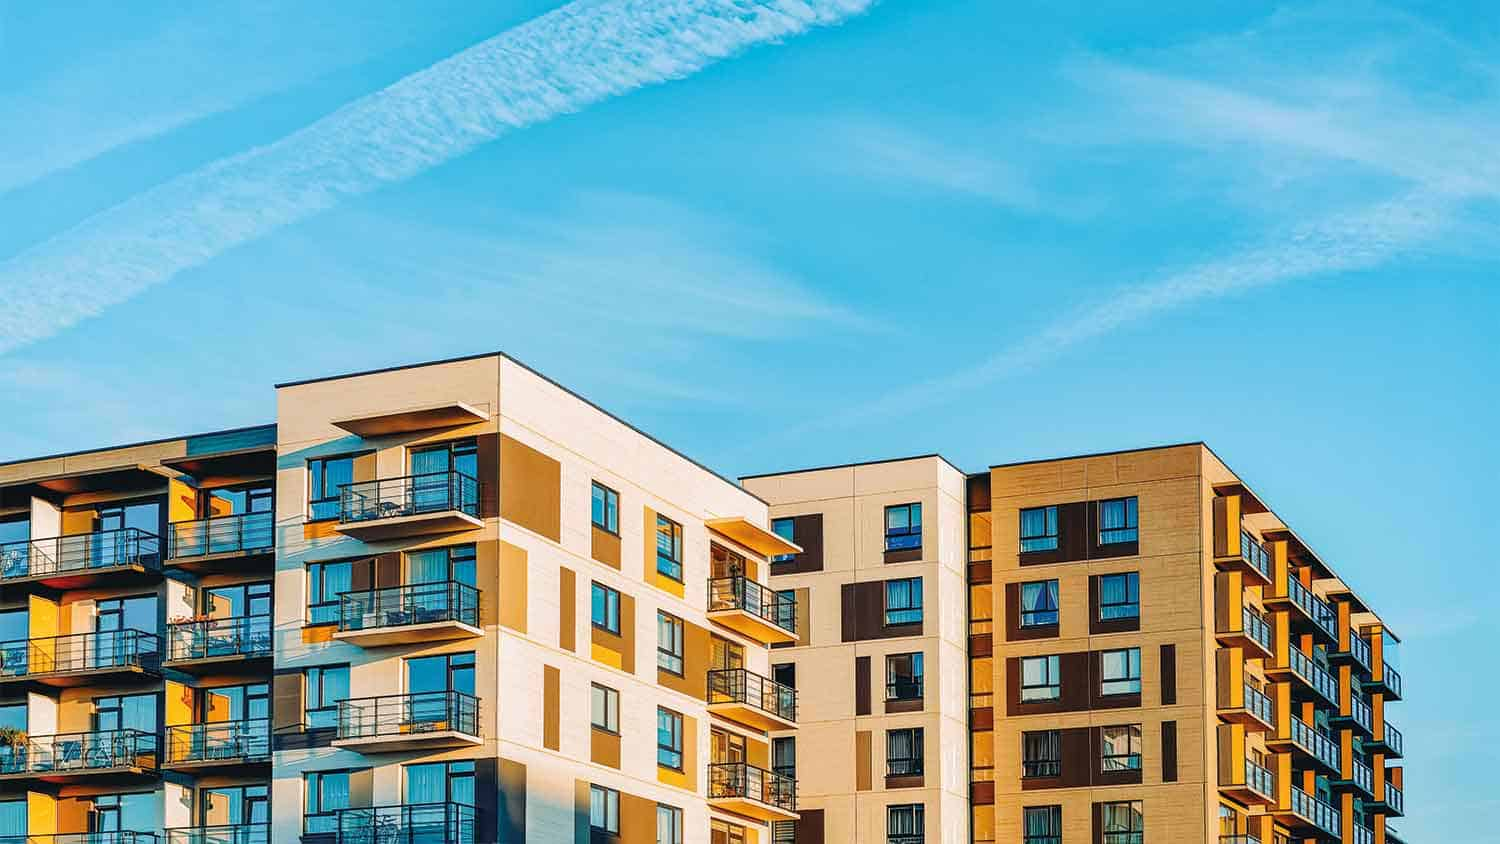 Apartment blocks with a blue sky background